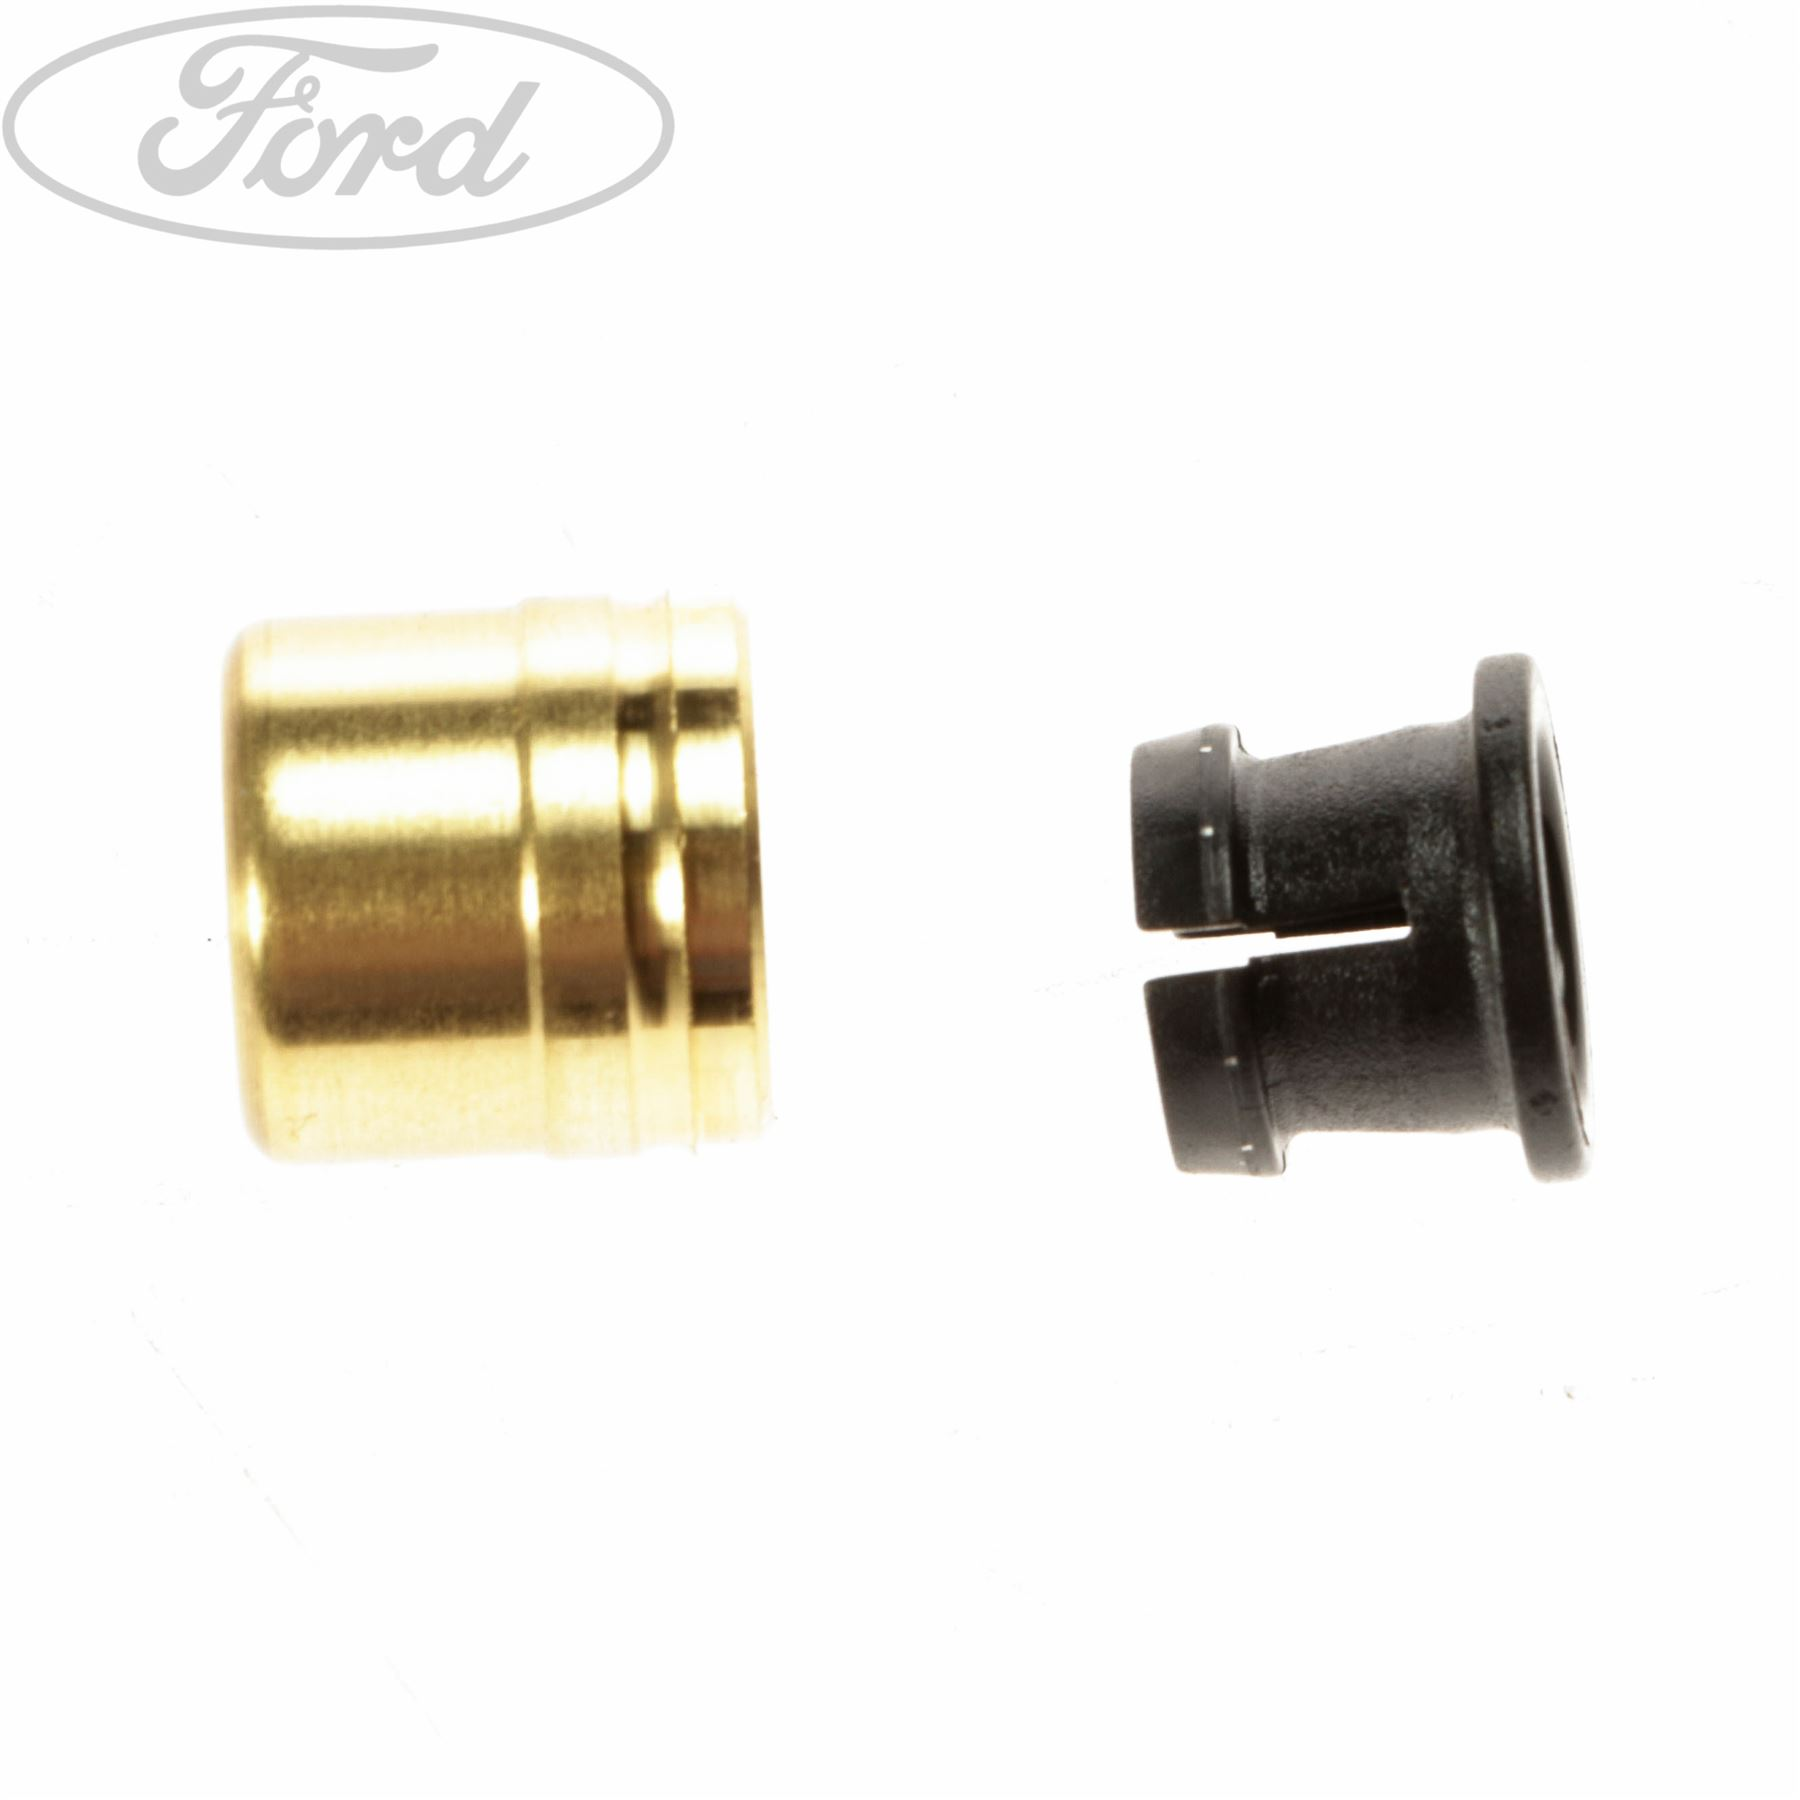 Genuine Ford ABS Brake Booster Vacuum Hose Connection Repair 1653956